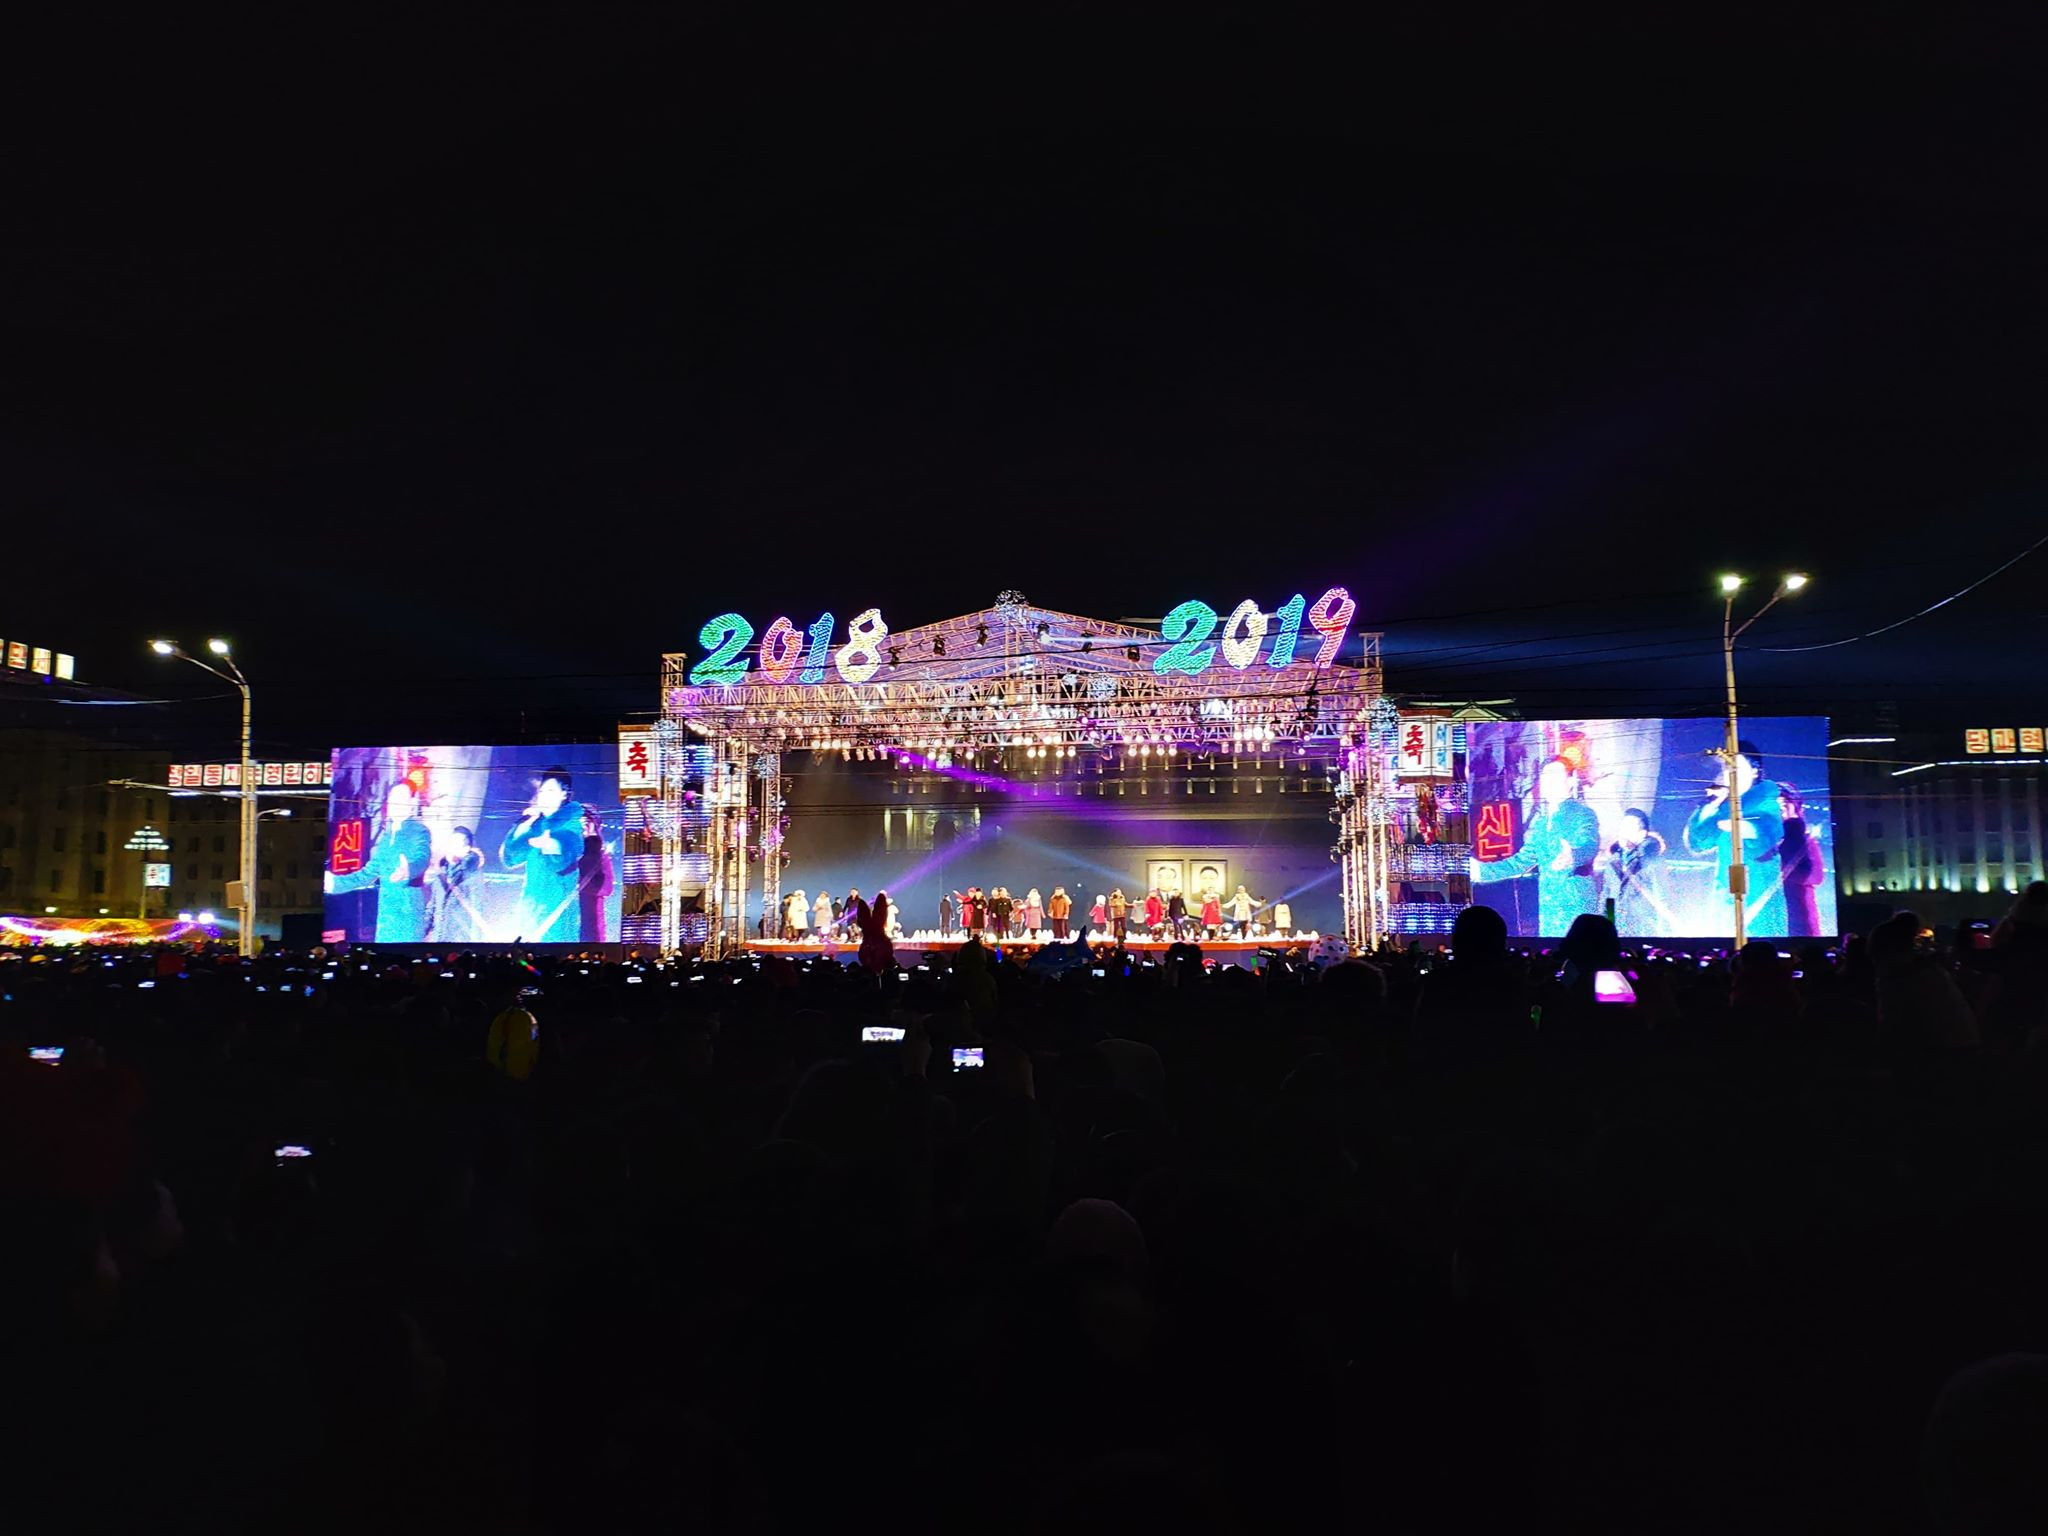 The stage of the New Years eve show in North Korea